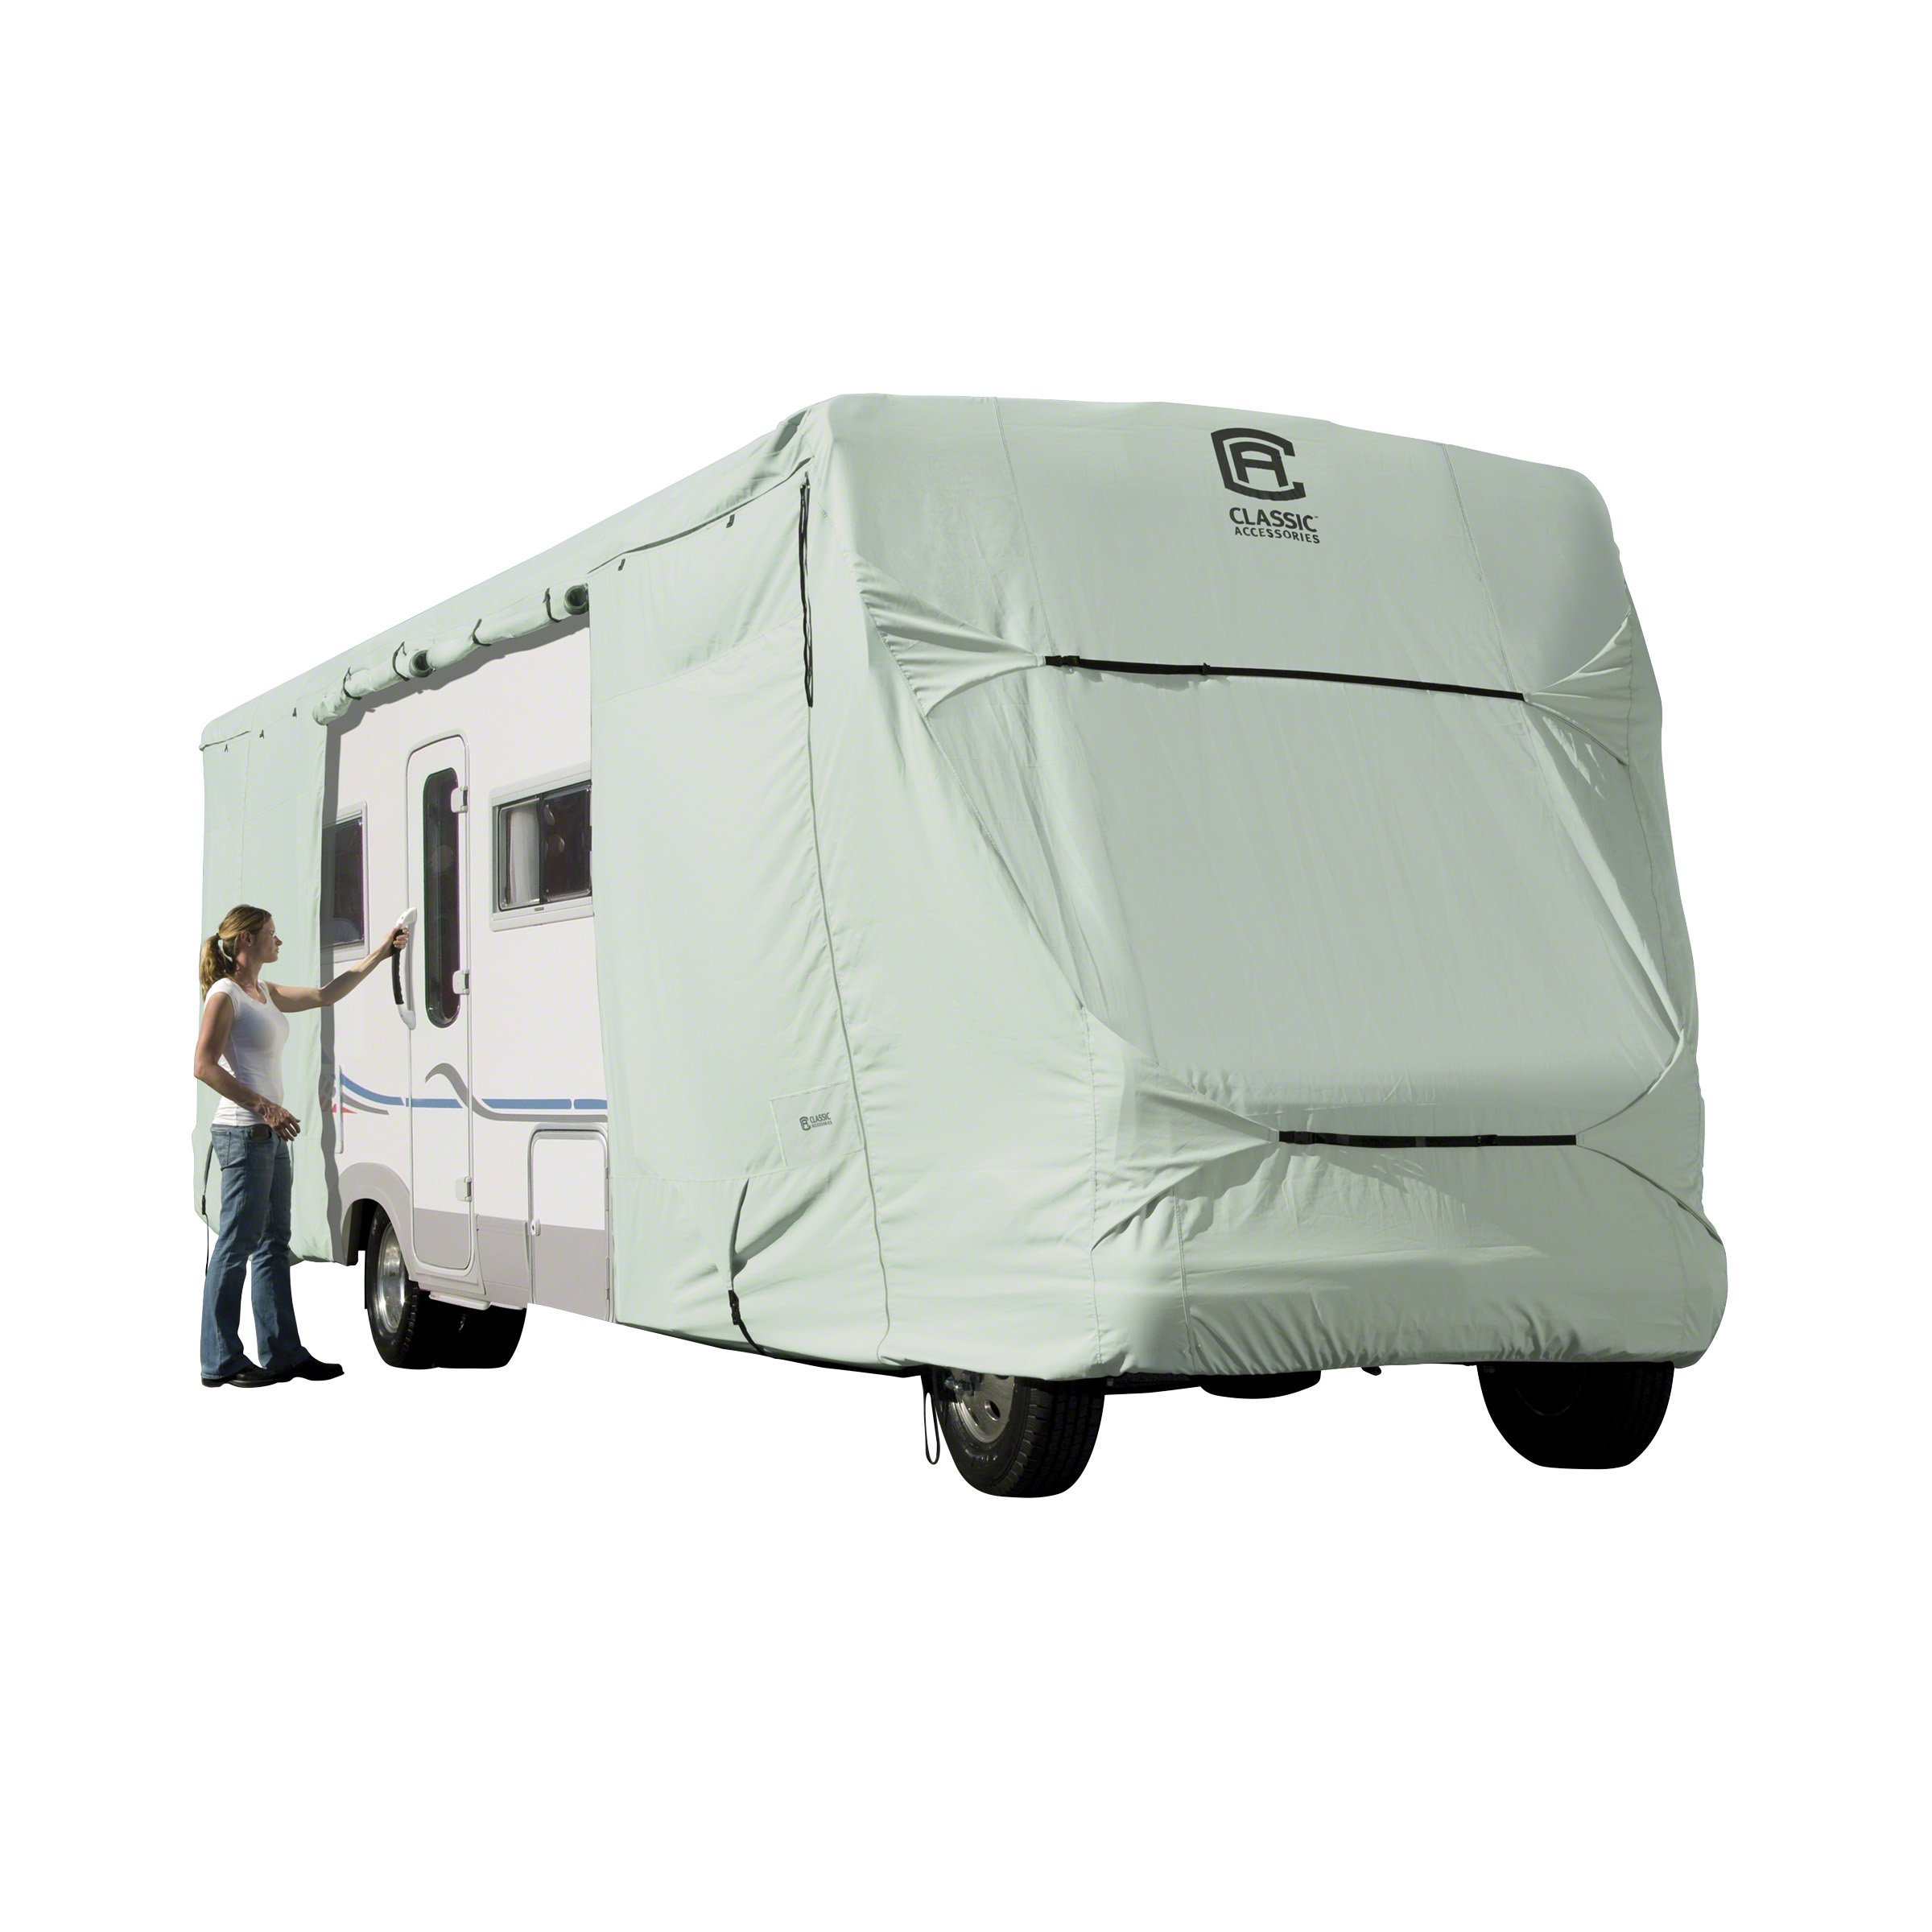 Classic Accessories 80-131-181001-LG Fits Overdrive PermaPro Heavy Duty Cover for 29' to 32' Class C RVs, Silver Sage